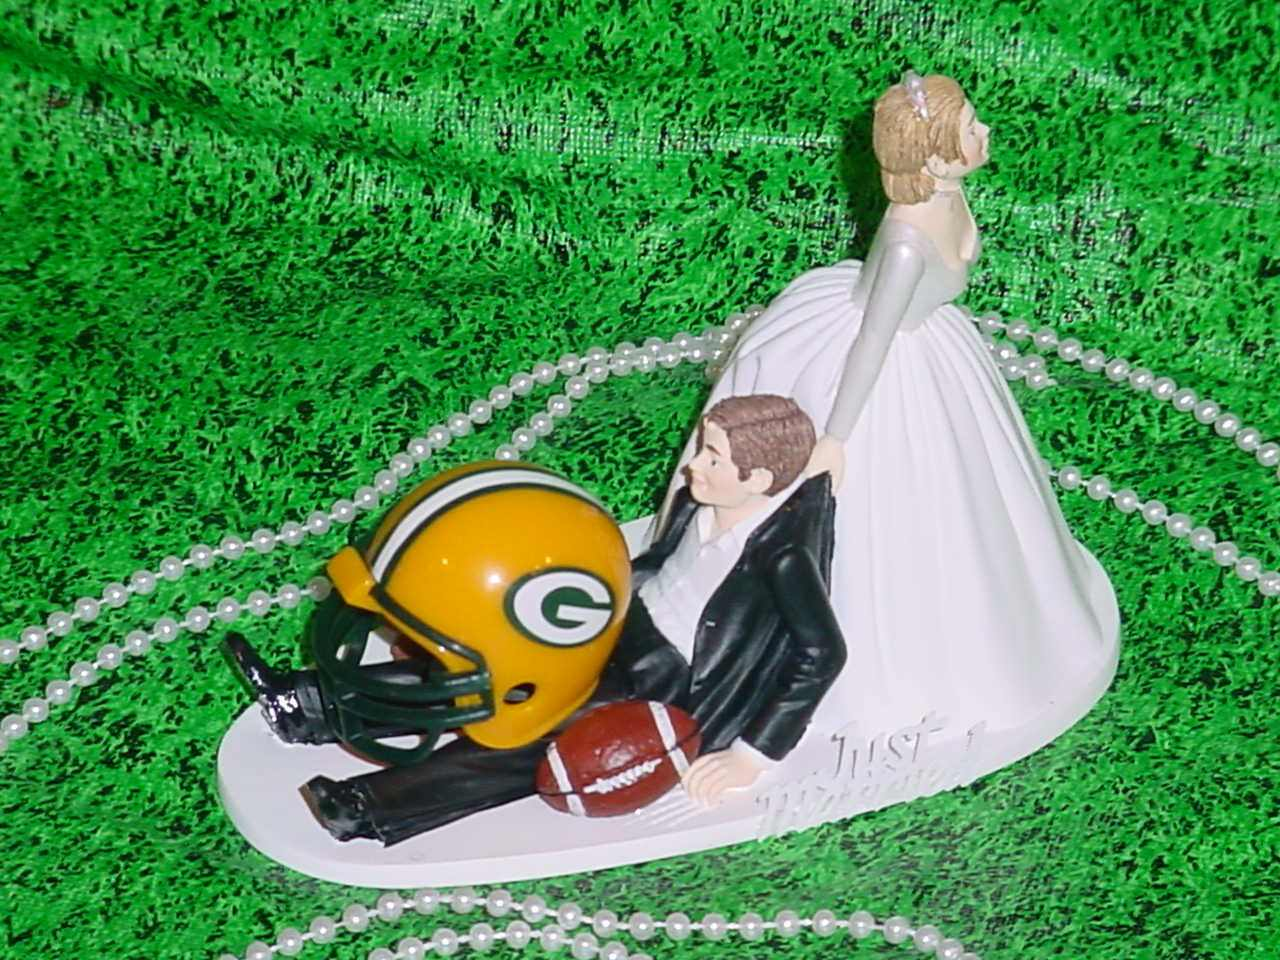 Greenbay packers wedding for Green bay packers wedding dress